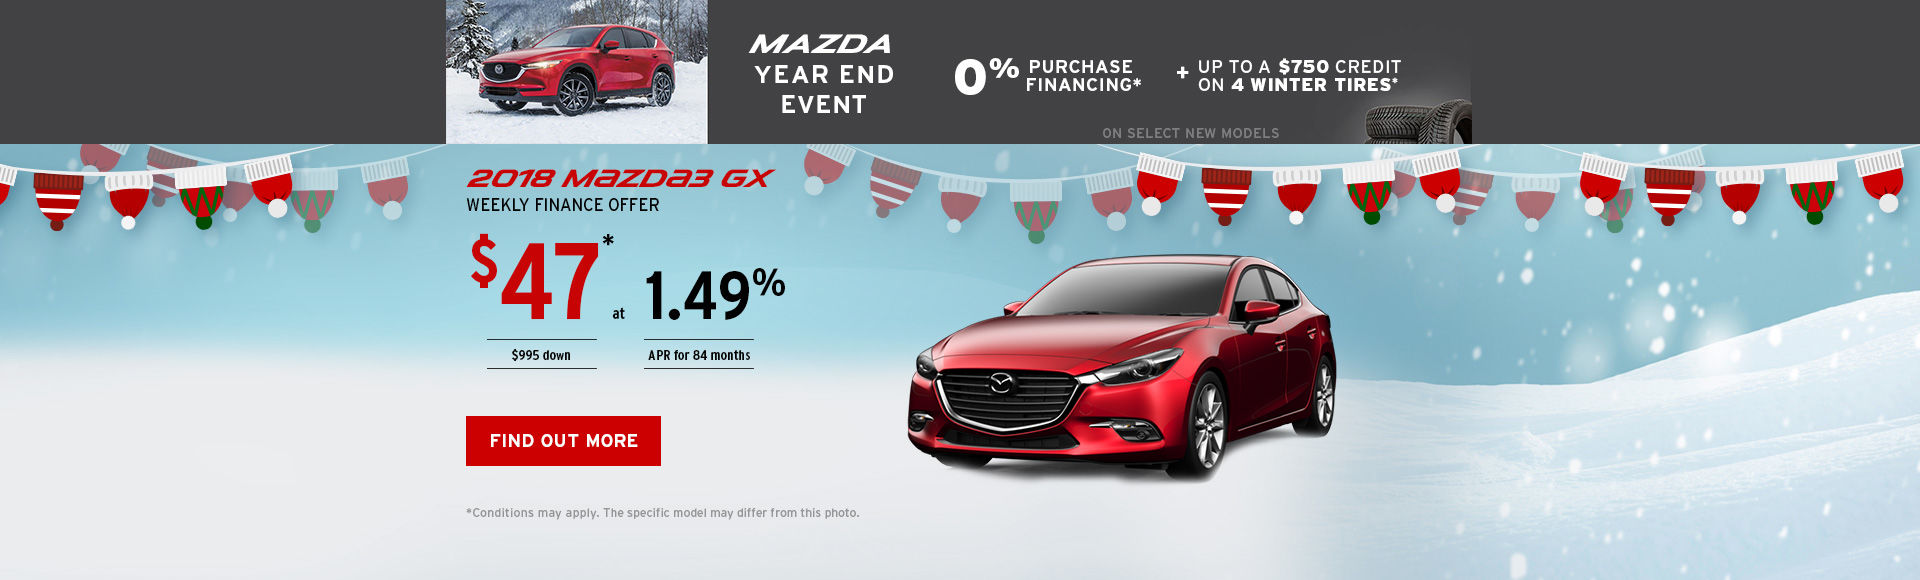 Get the 2018 Mazda3!